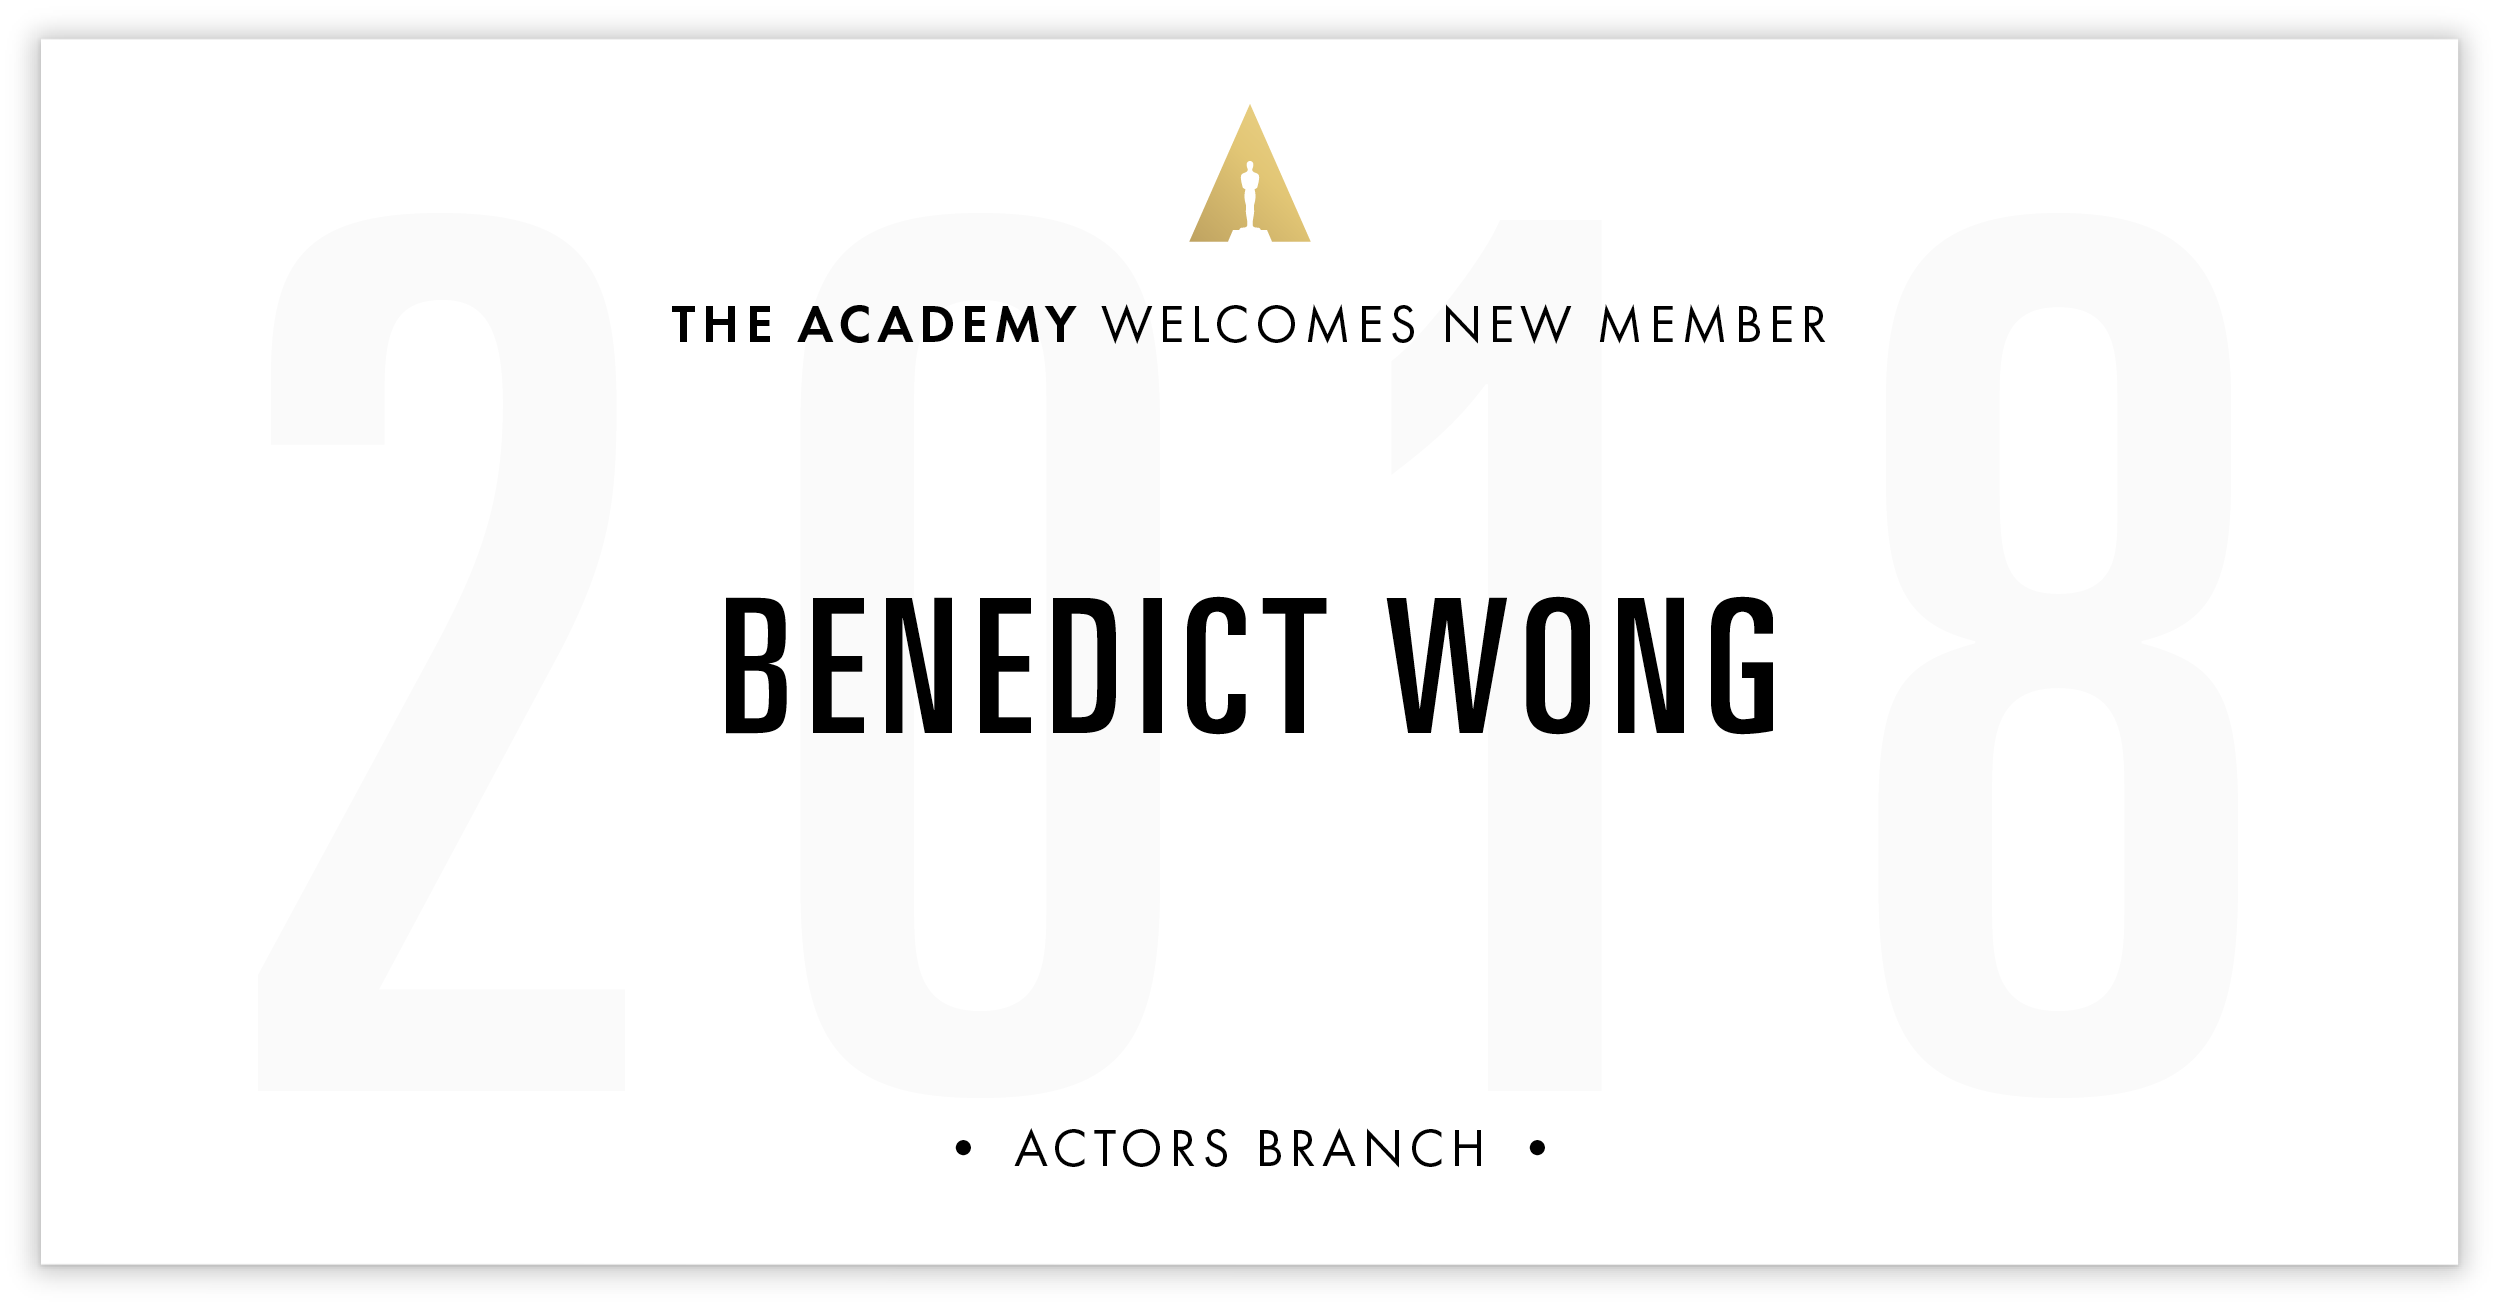 Benedict Wong is invited!